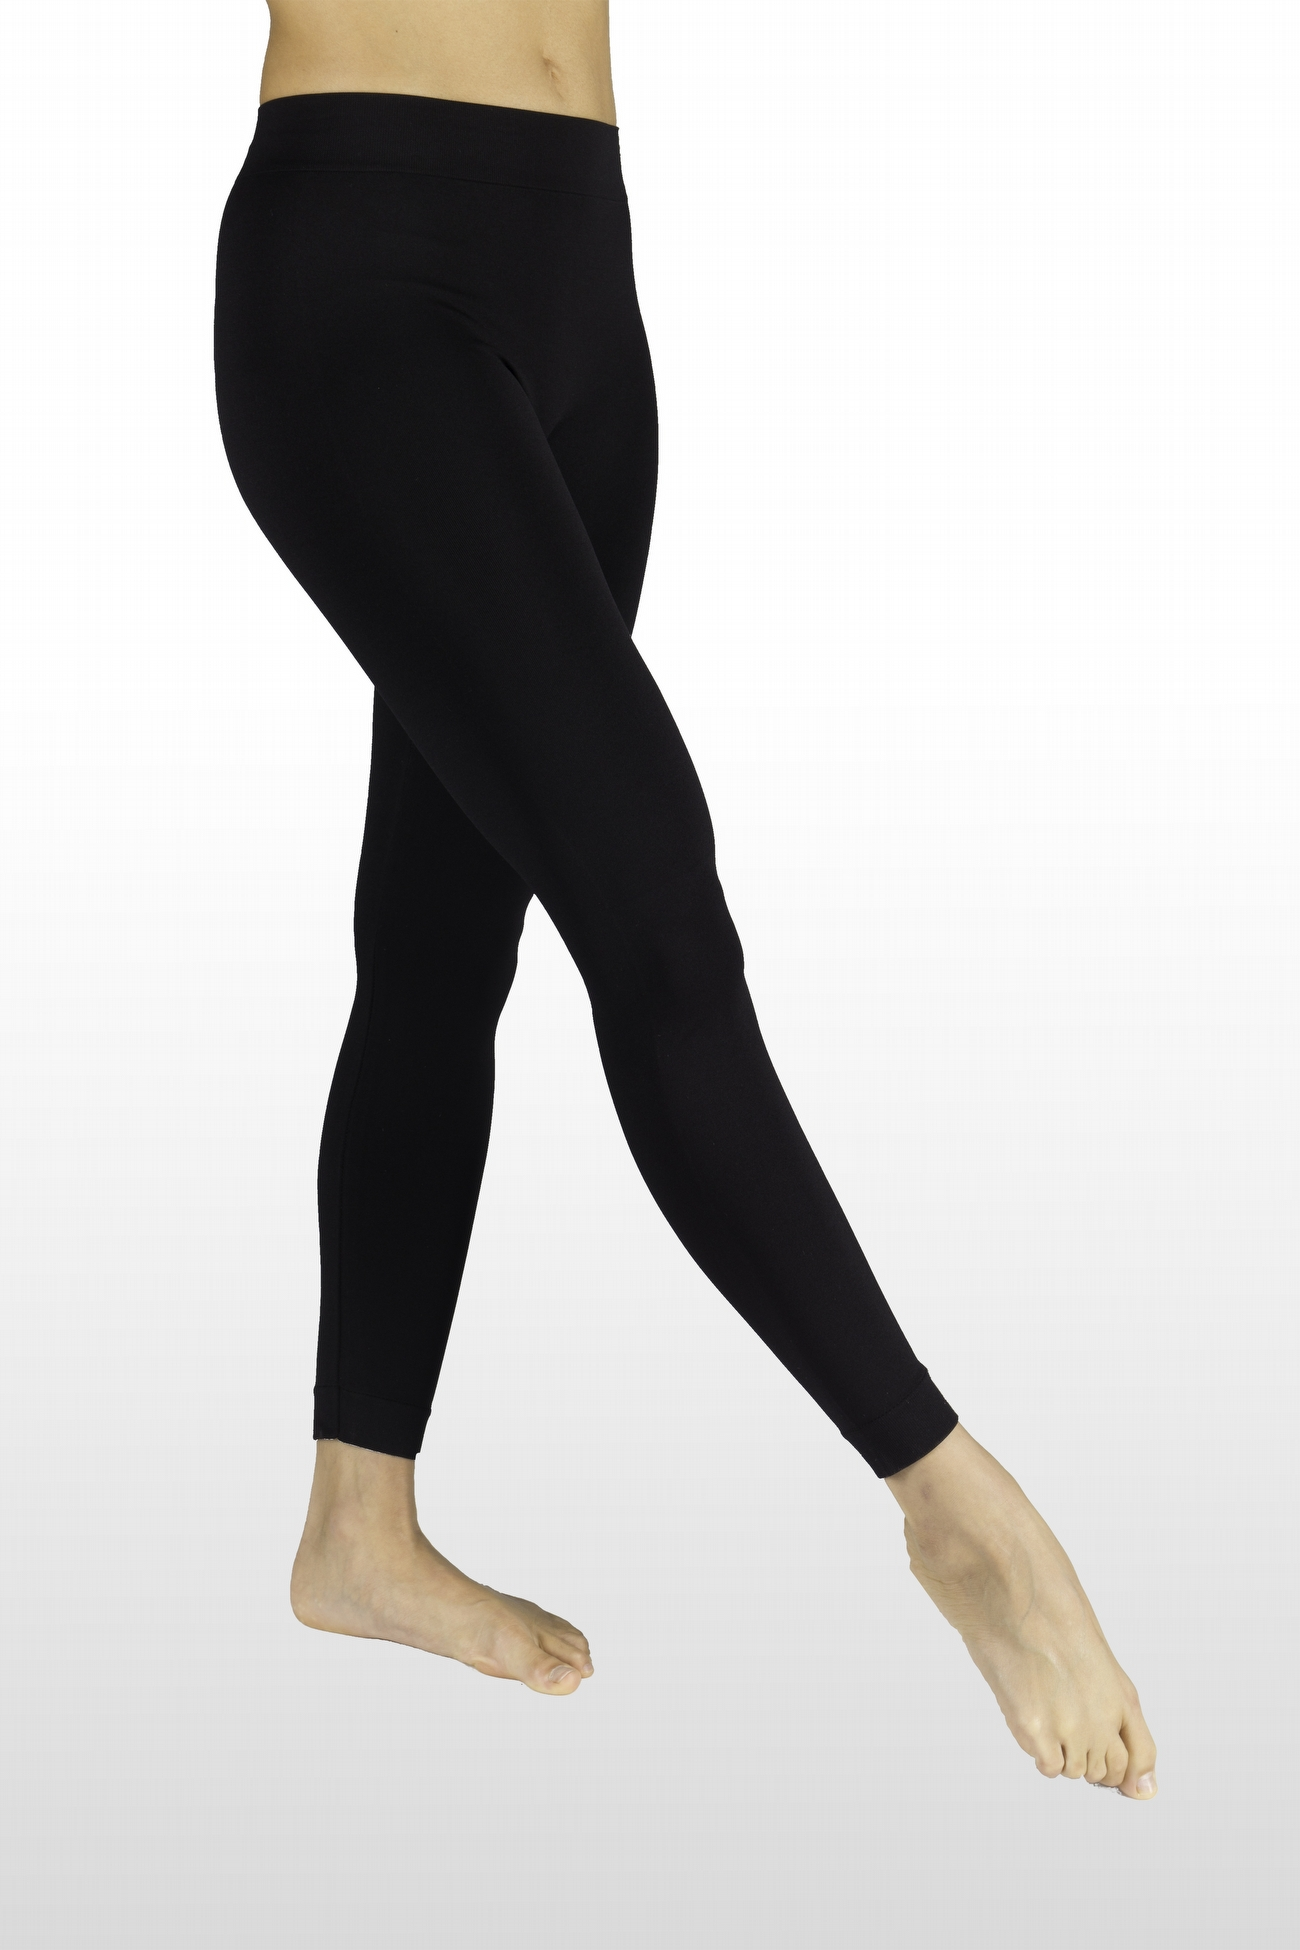 compra online Skating FOOTLESS TIGHTS 160 DEN